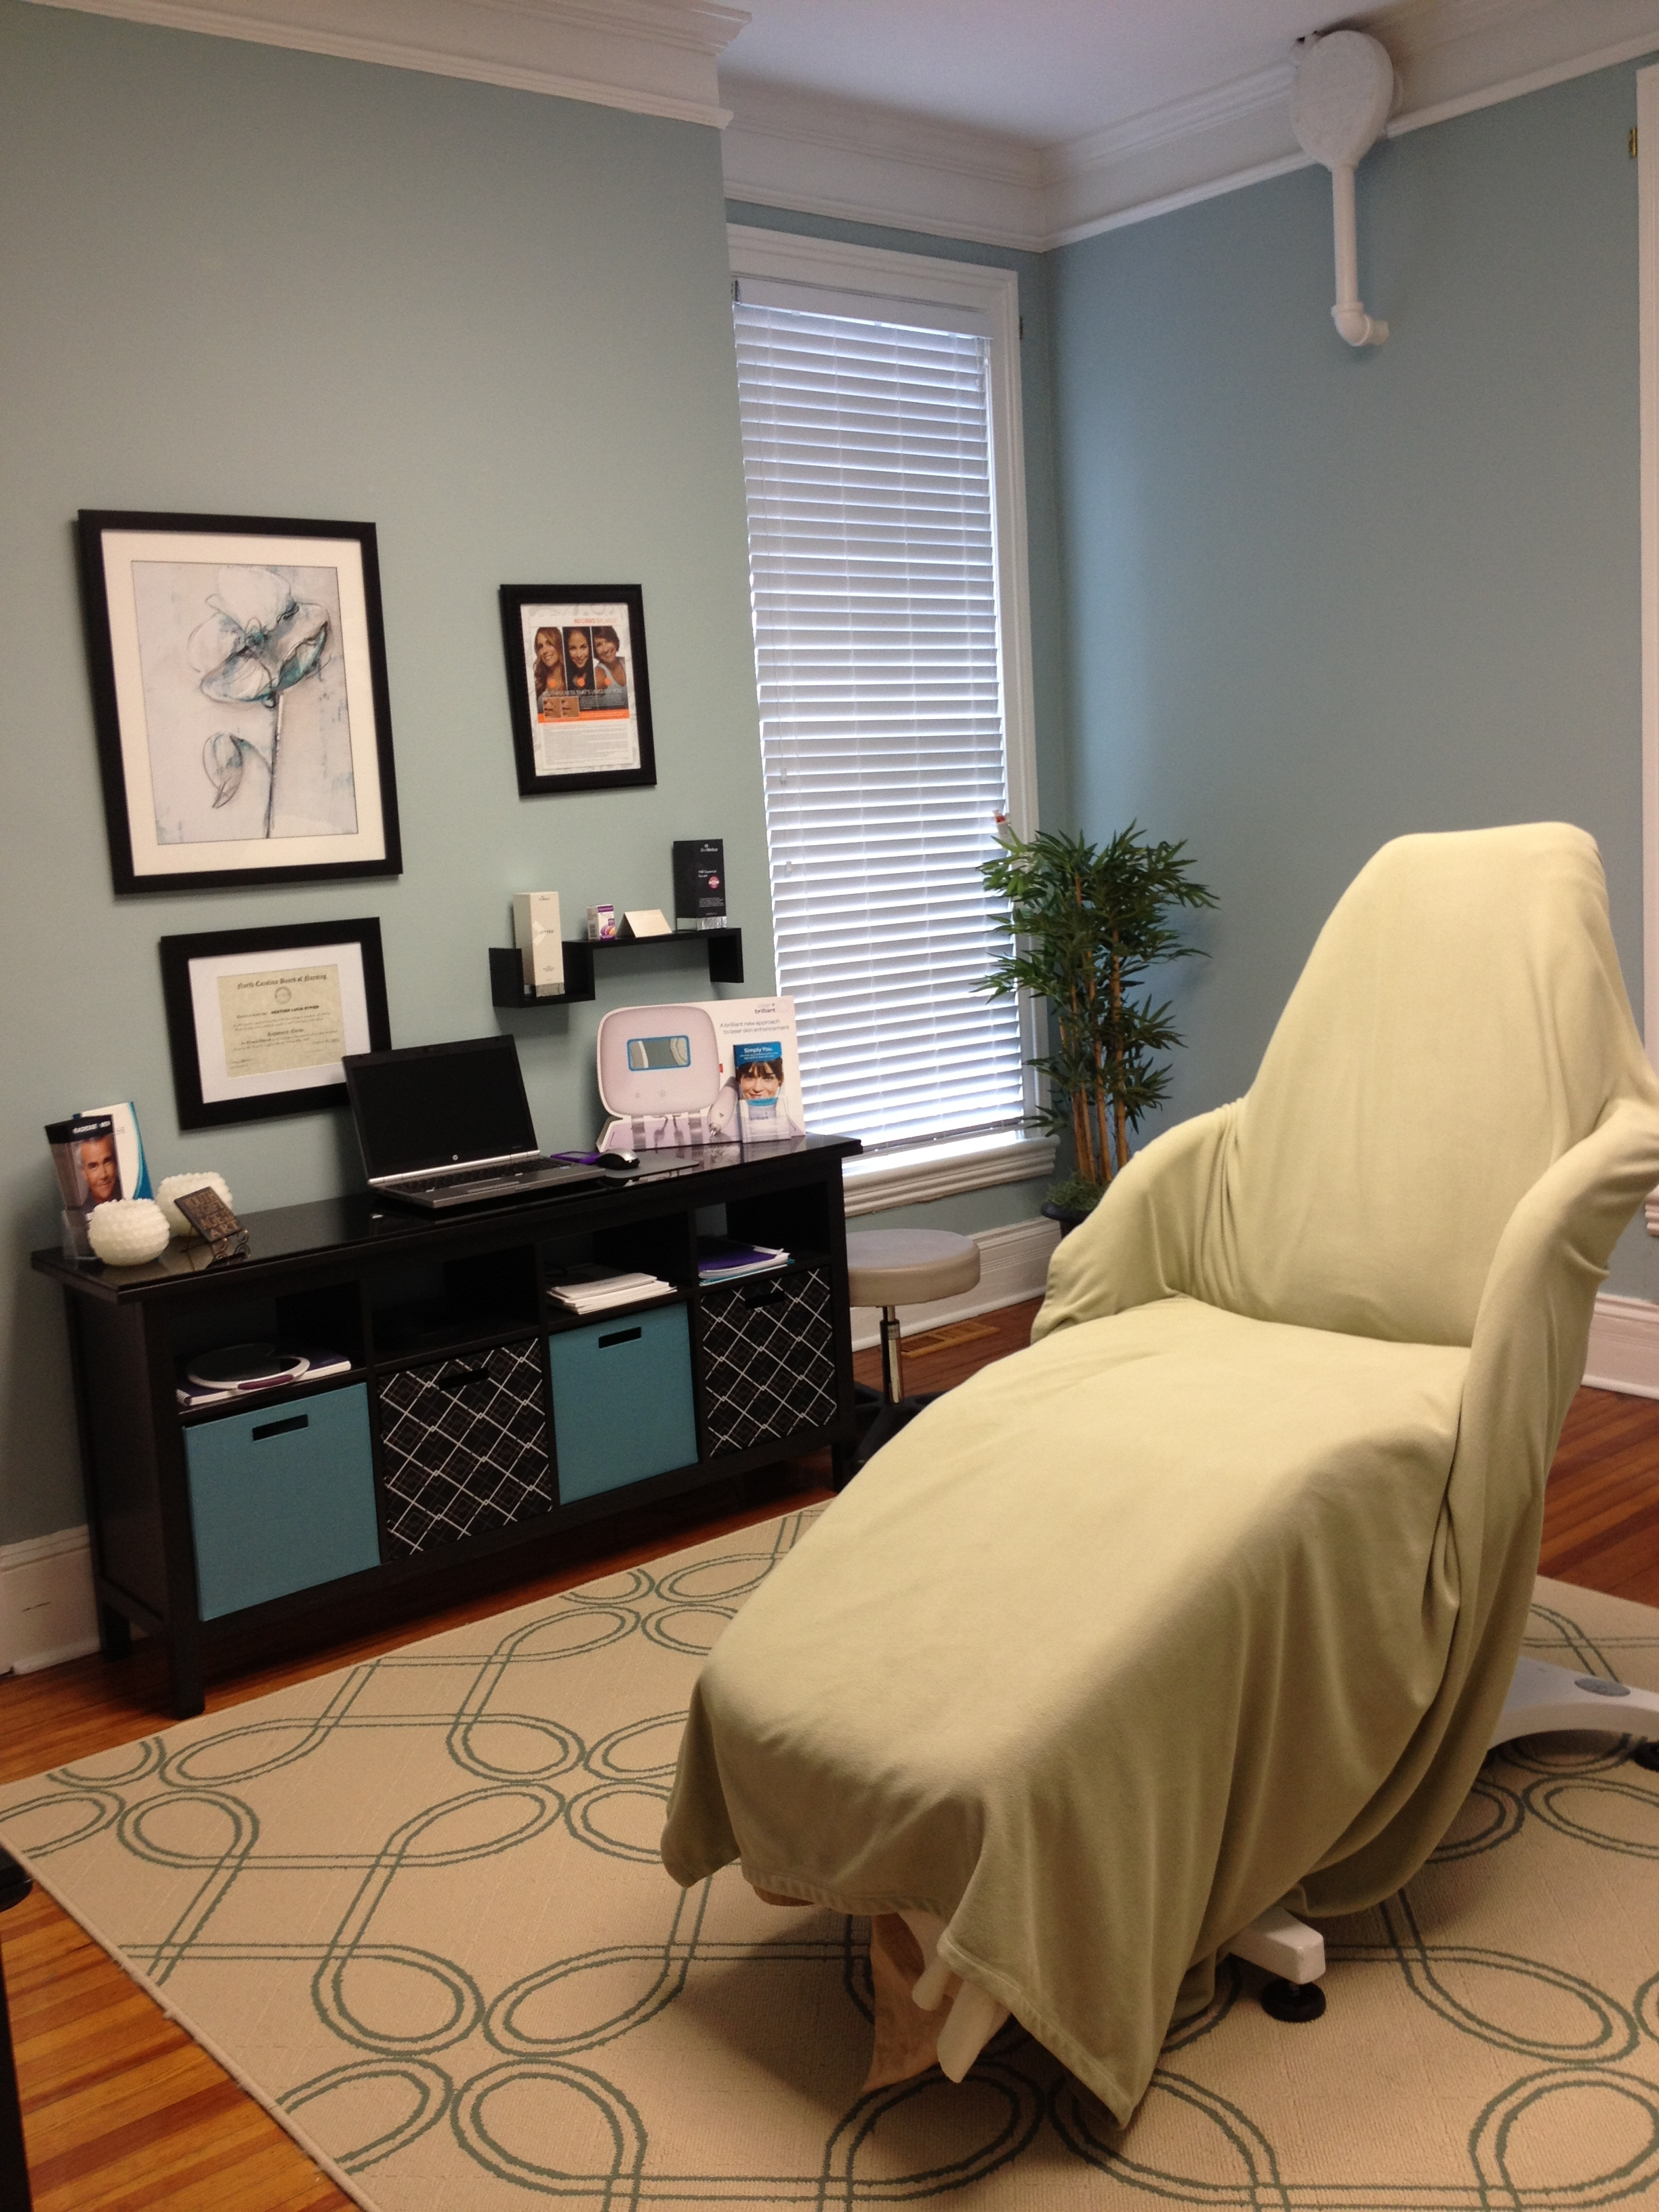 Reflections medical spa in charlotte nc 28202 for 8 the salon charlotte nc